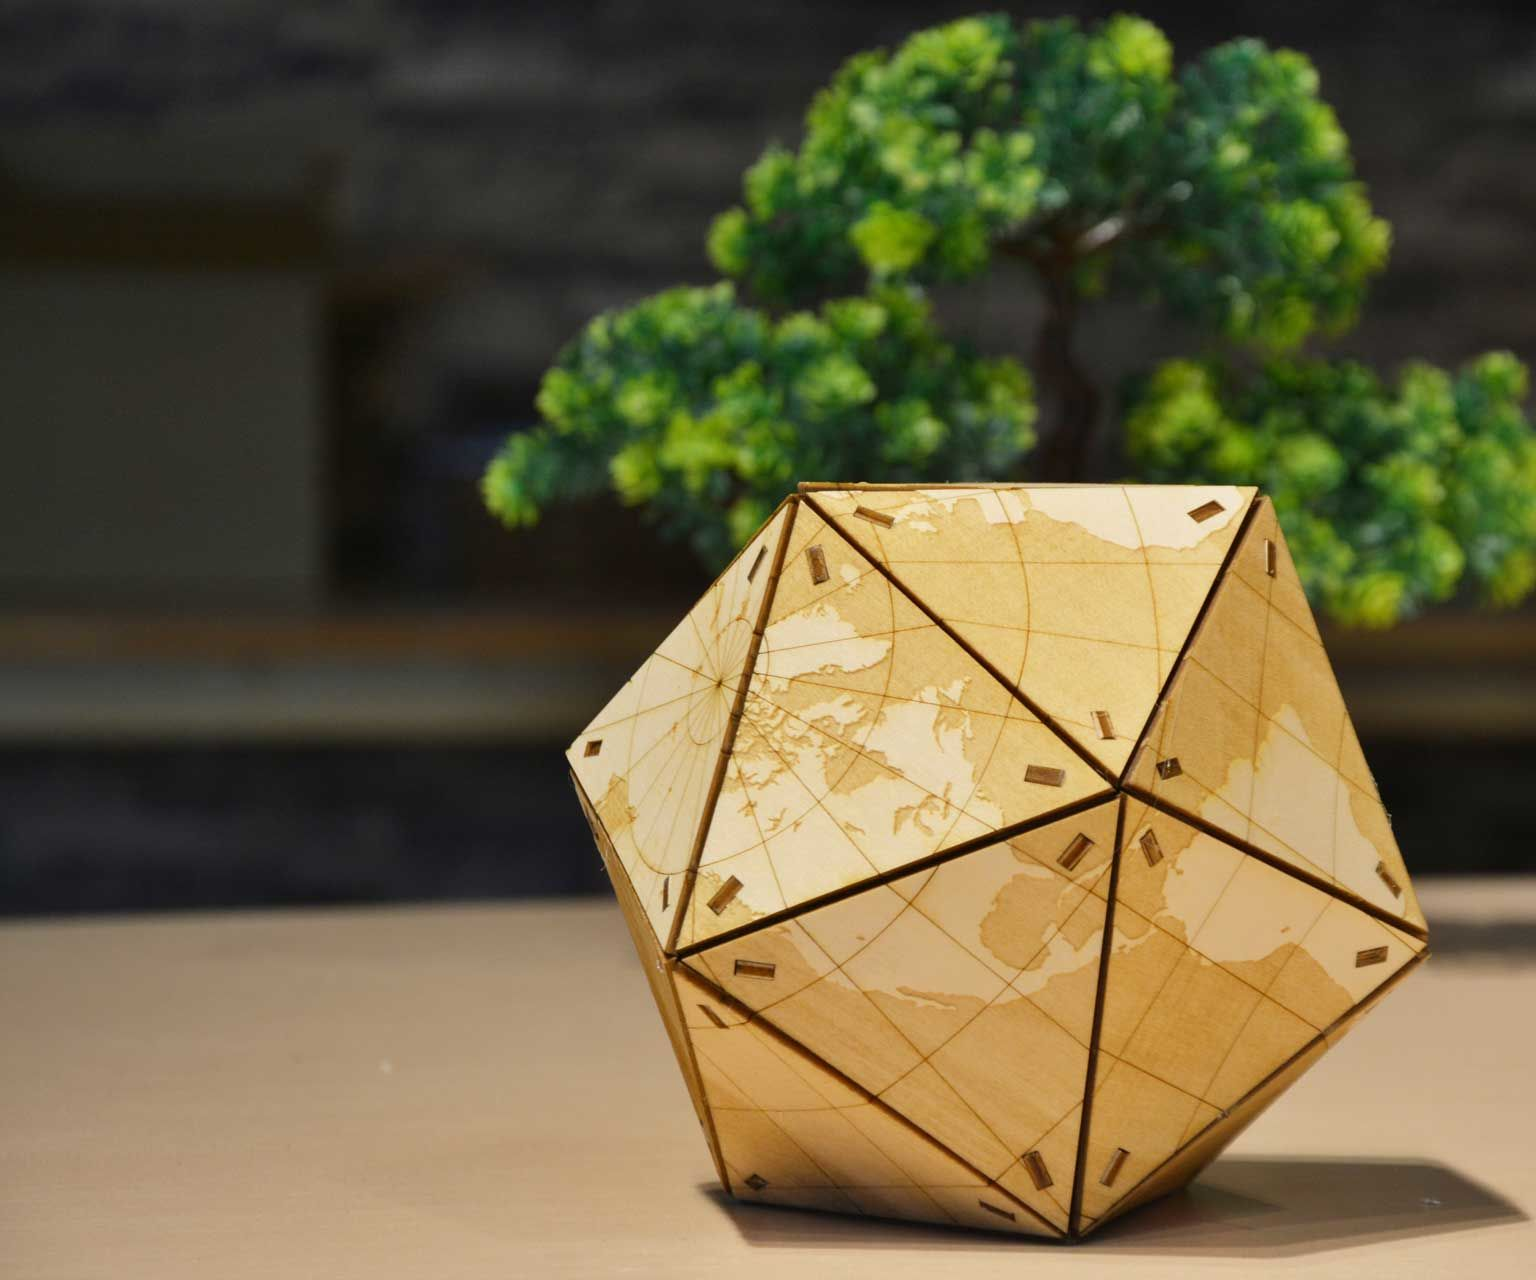 How to Make a Wooden Globe